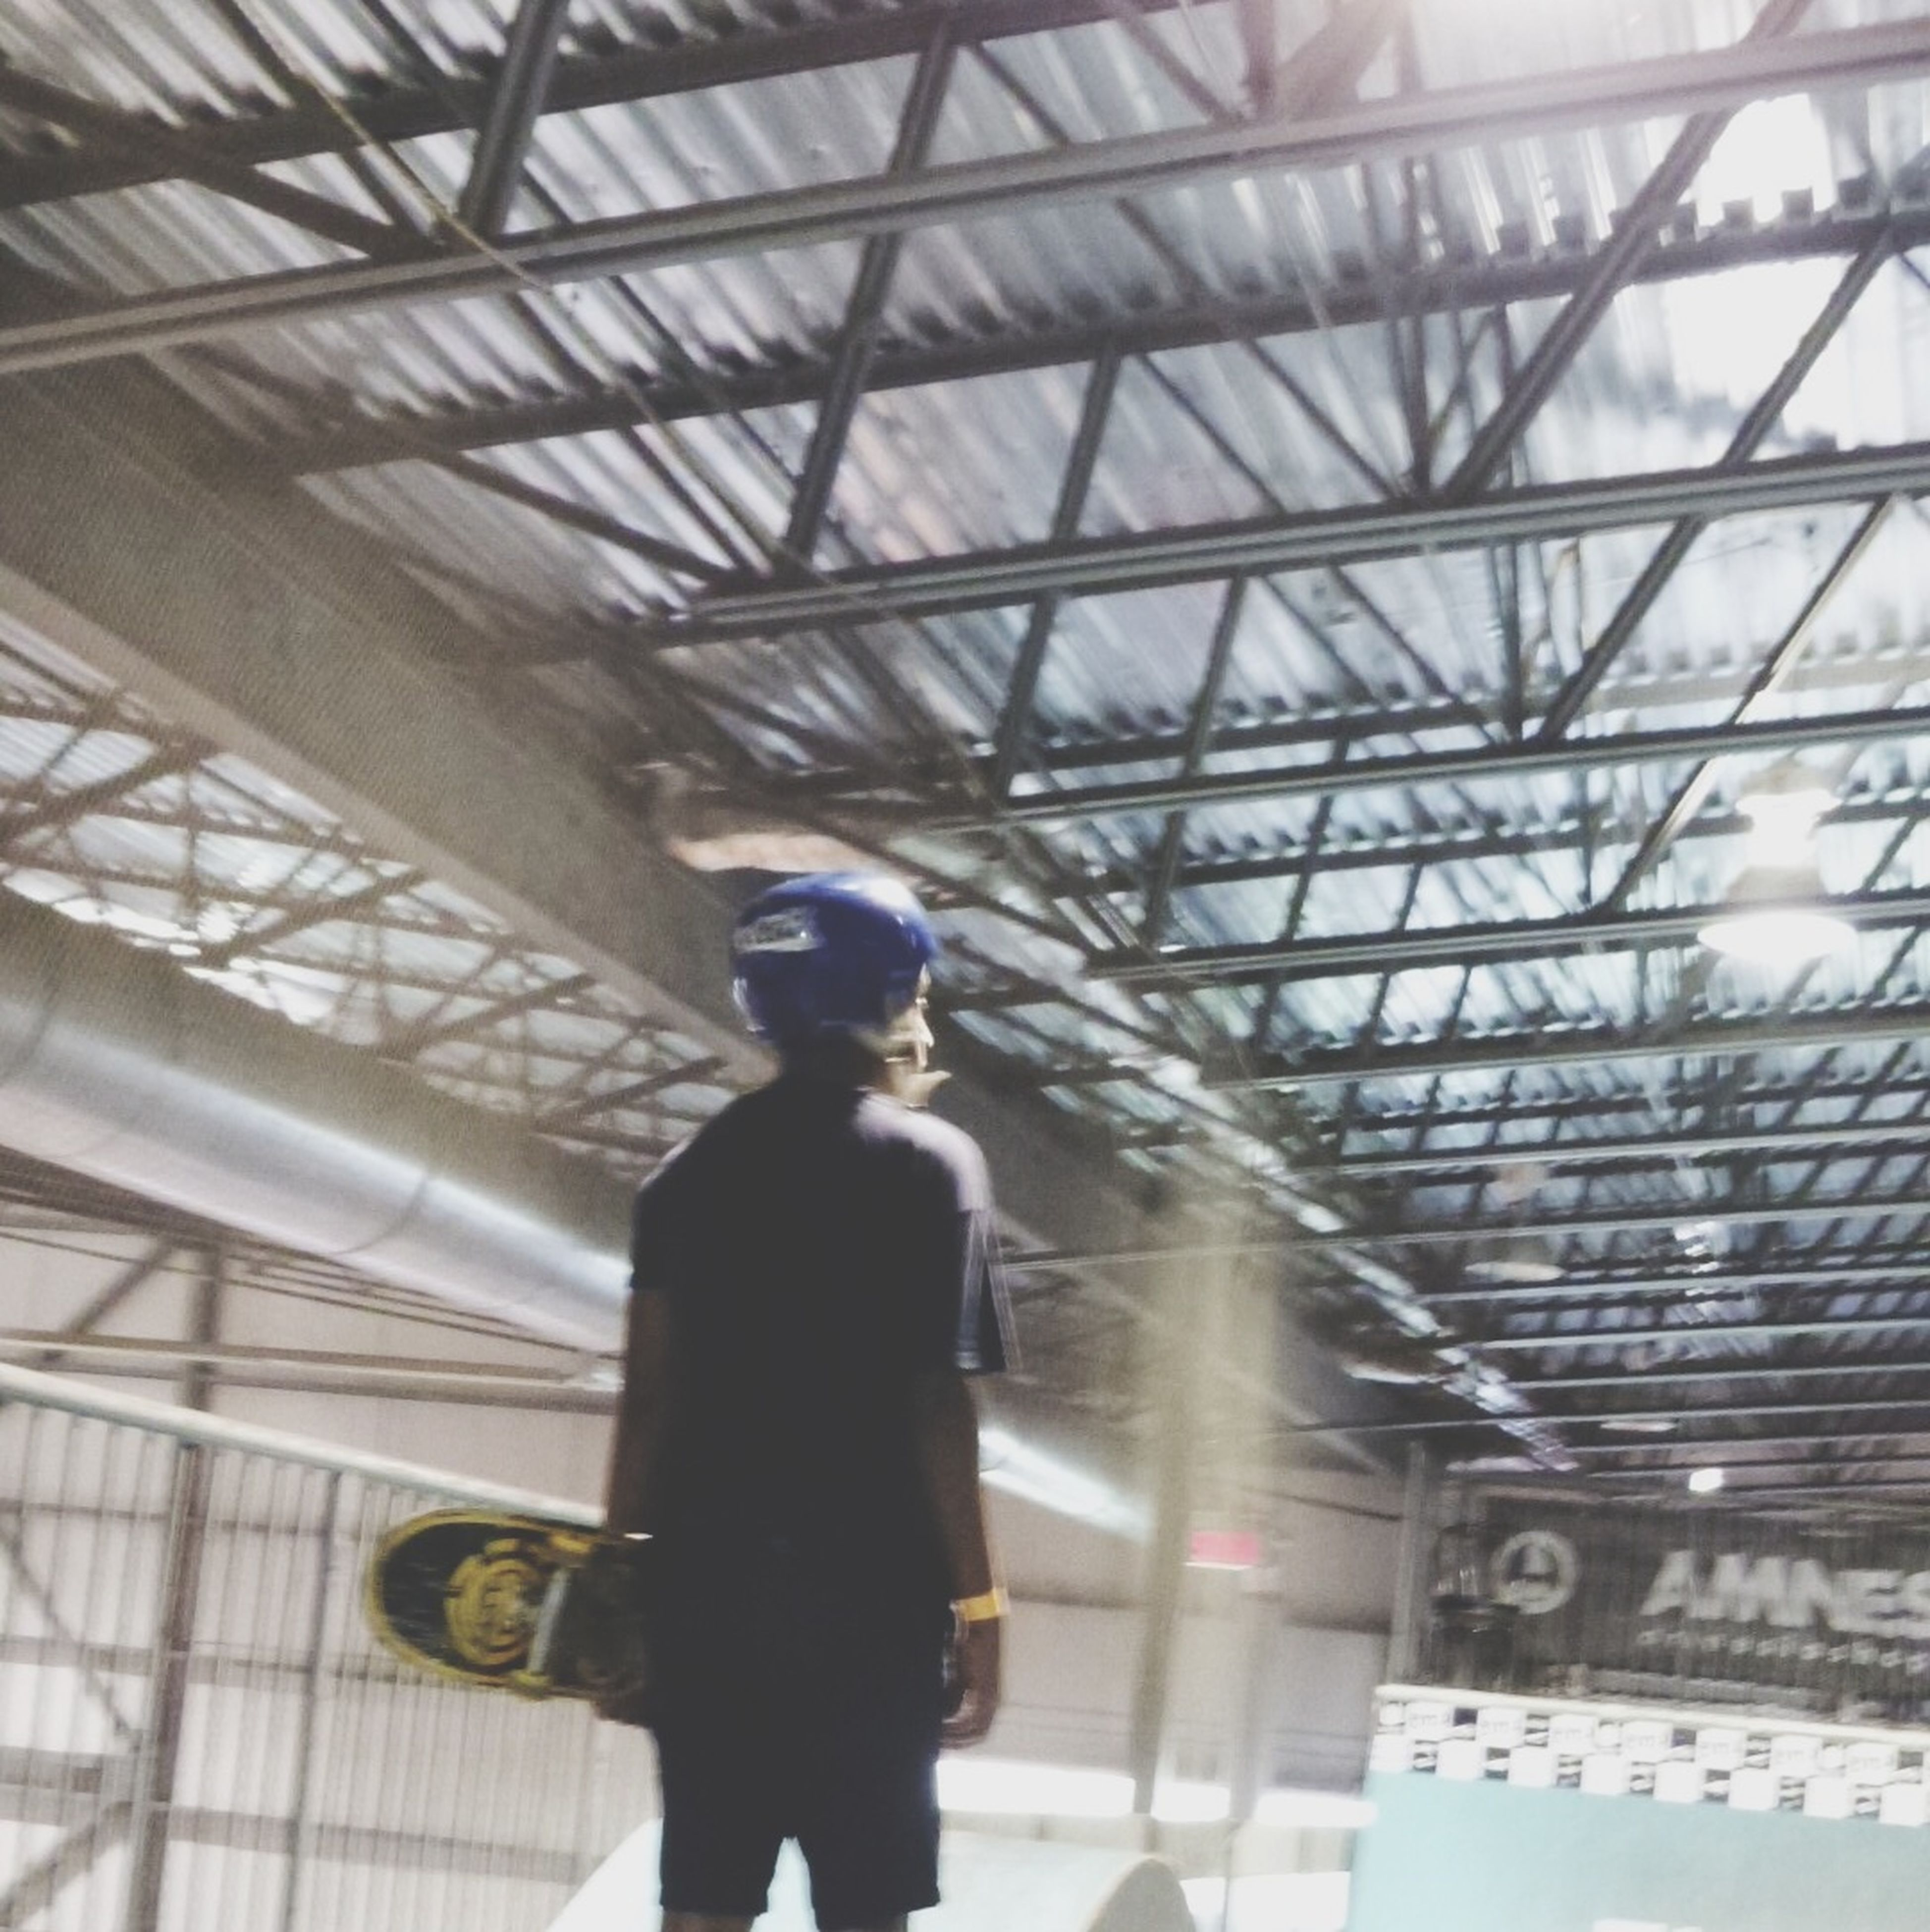 indoors, lifestyles, low angle view, leisure activity, men, built structure, architecture, ceiling, standing, full length, person, casual clothing, travel, young adult, day, modern, famous place